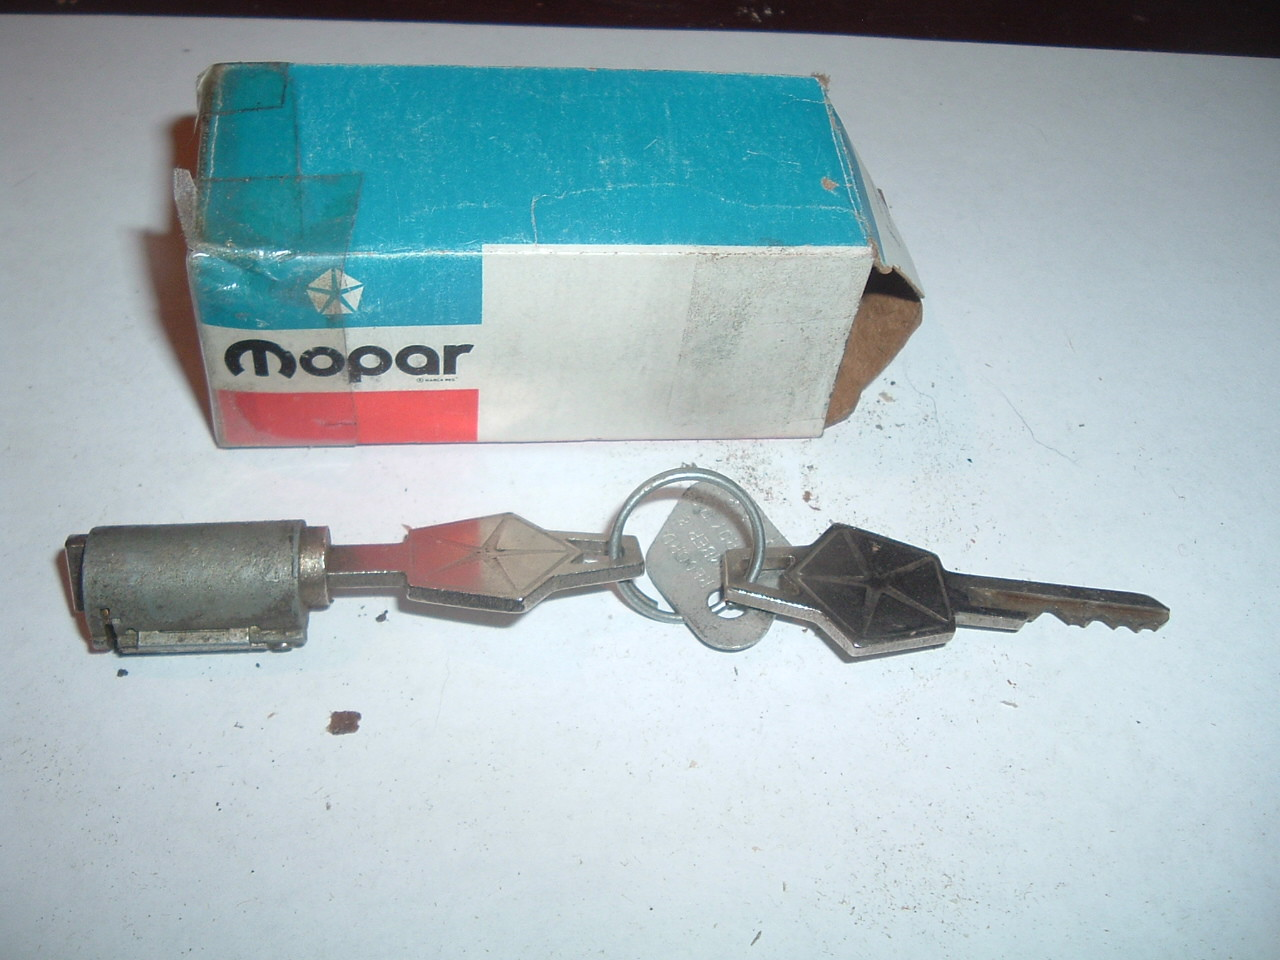 1948 50 52 54 56 58 60 62 64 66 68 dodge plymouth chrysler ignition switch w/keys nos mopar 2510472 (z 2510472)